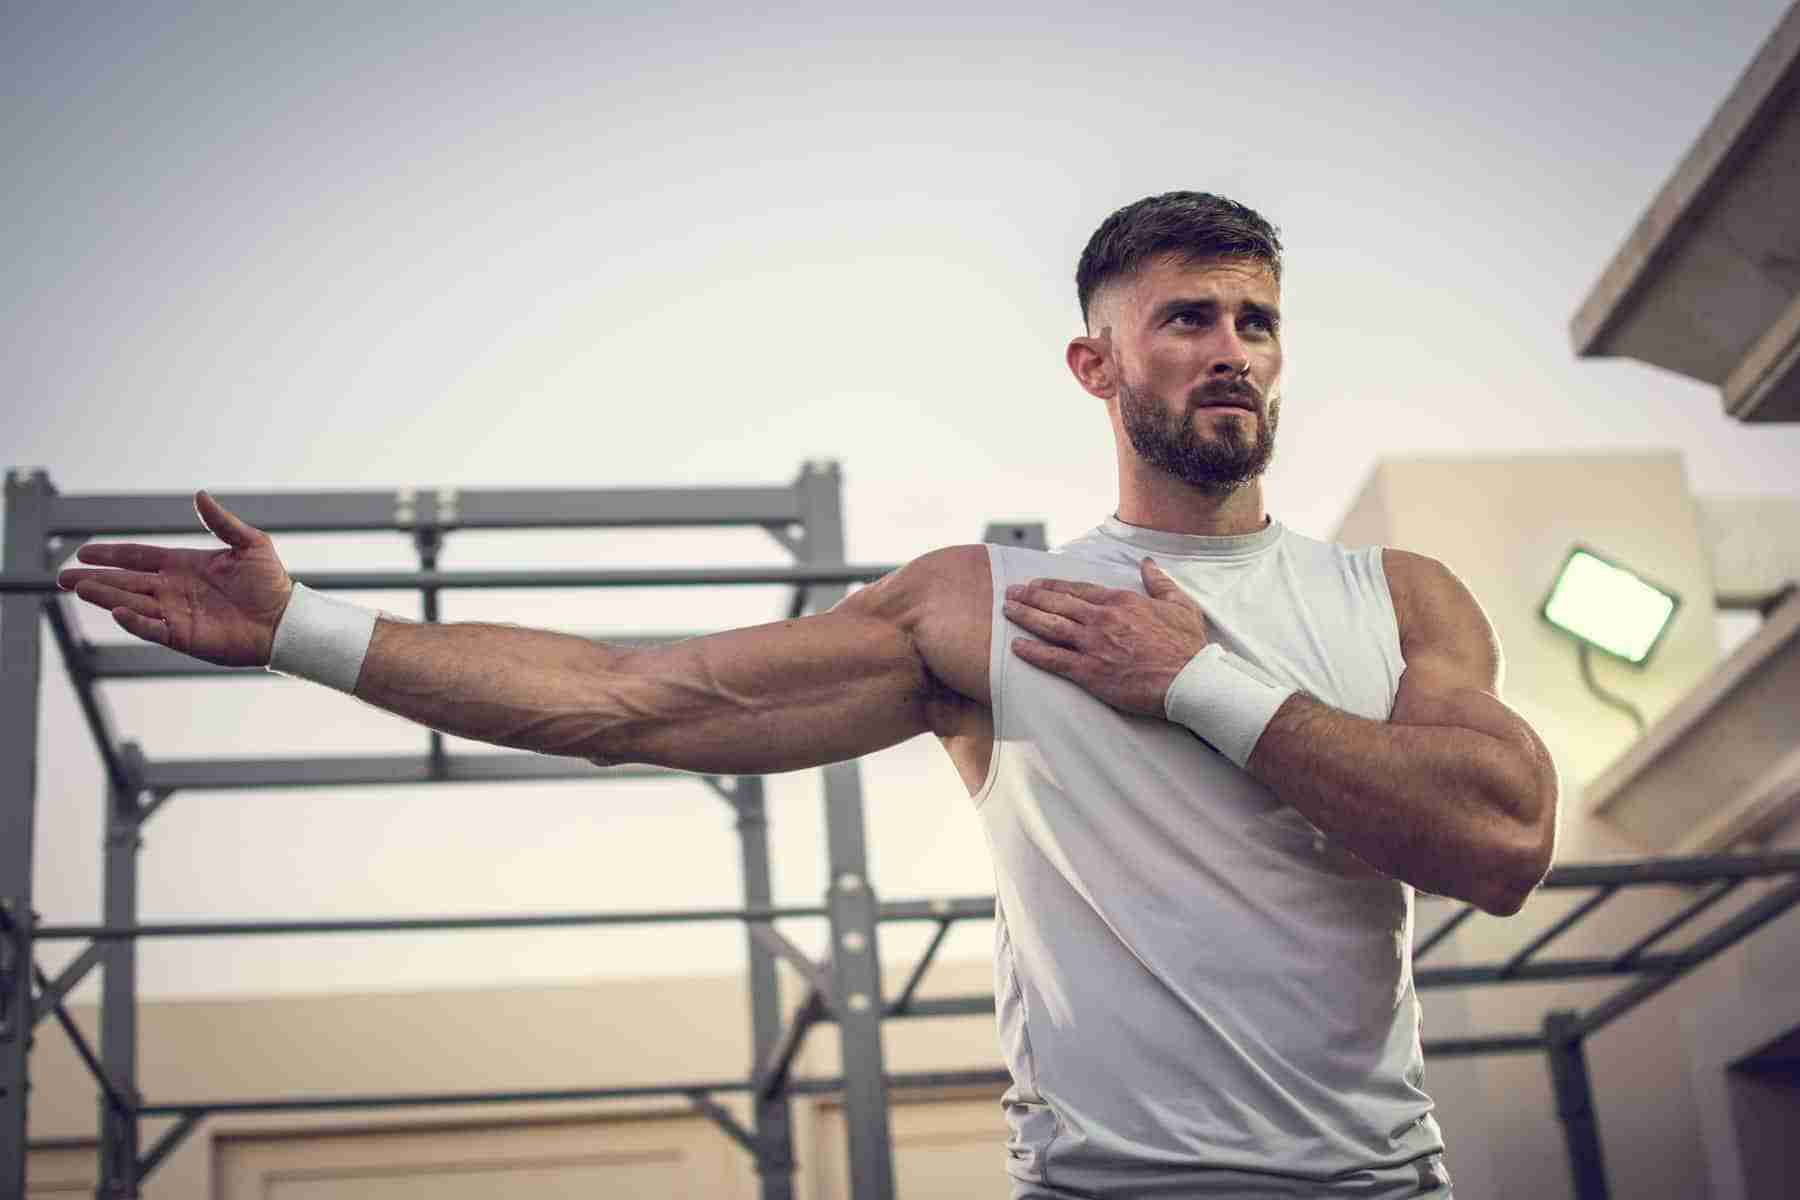 How to Determine the Cause of Anterior Shoulder Pain (2019)